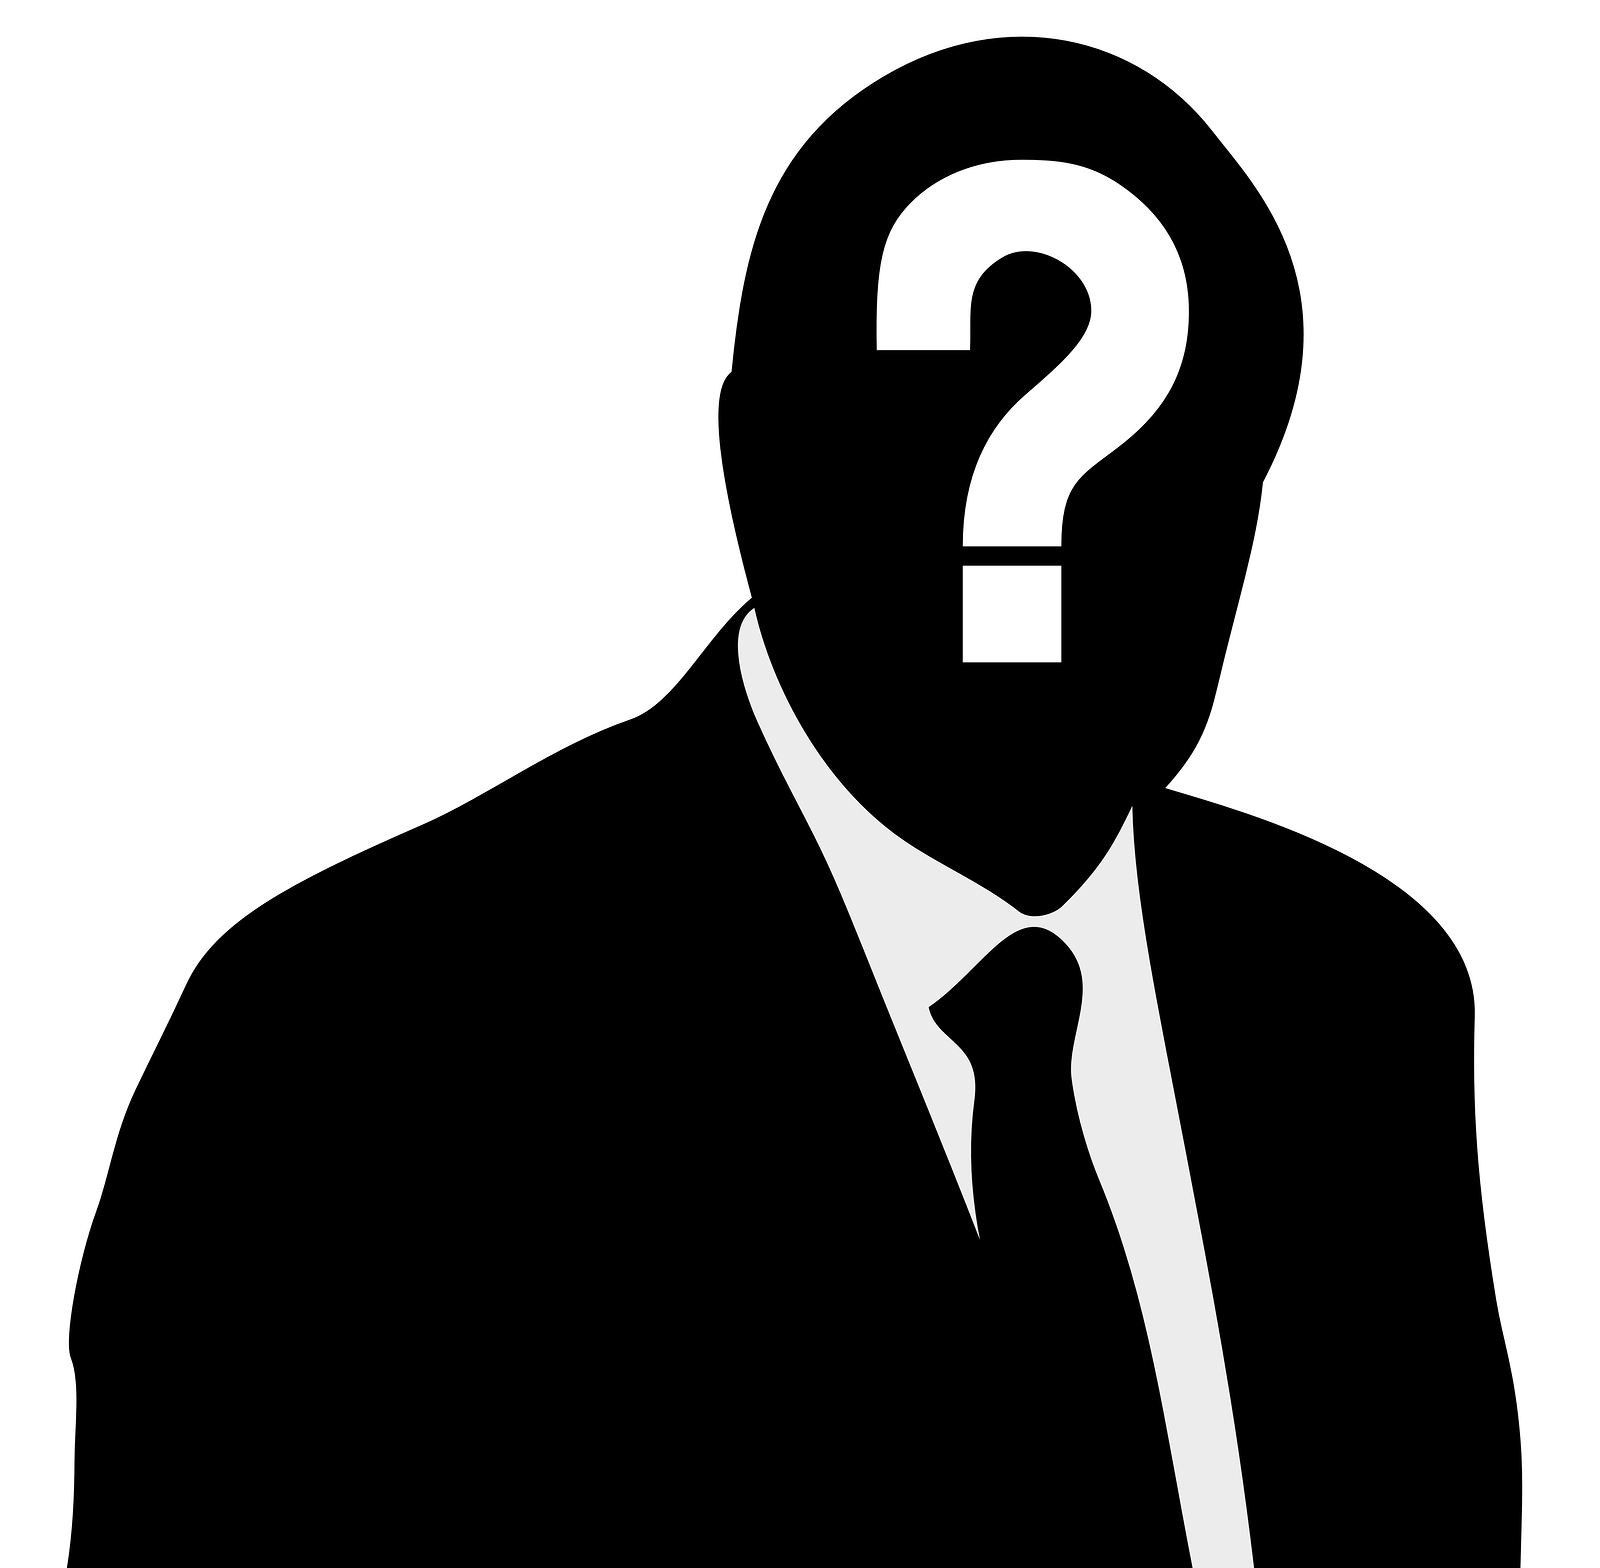 LinkedIn | Sell, Lead,... Blank Profile Picture With Question Mark